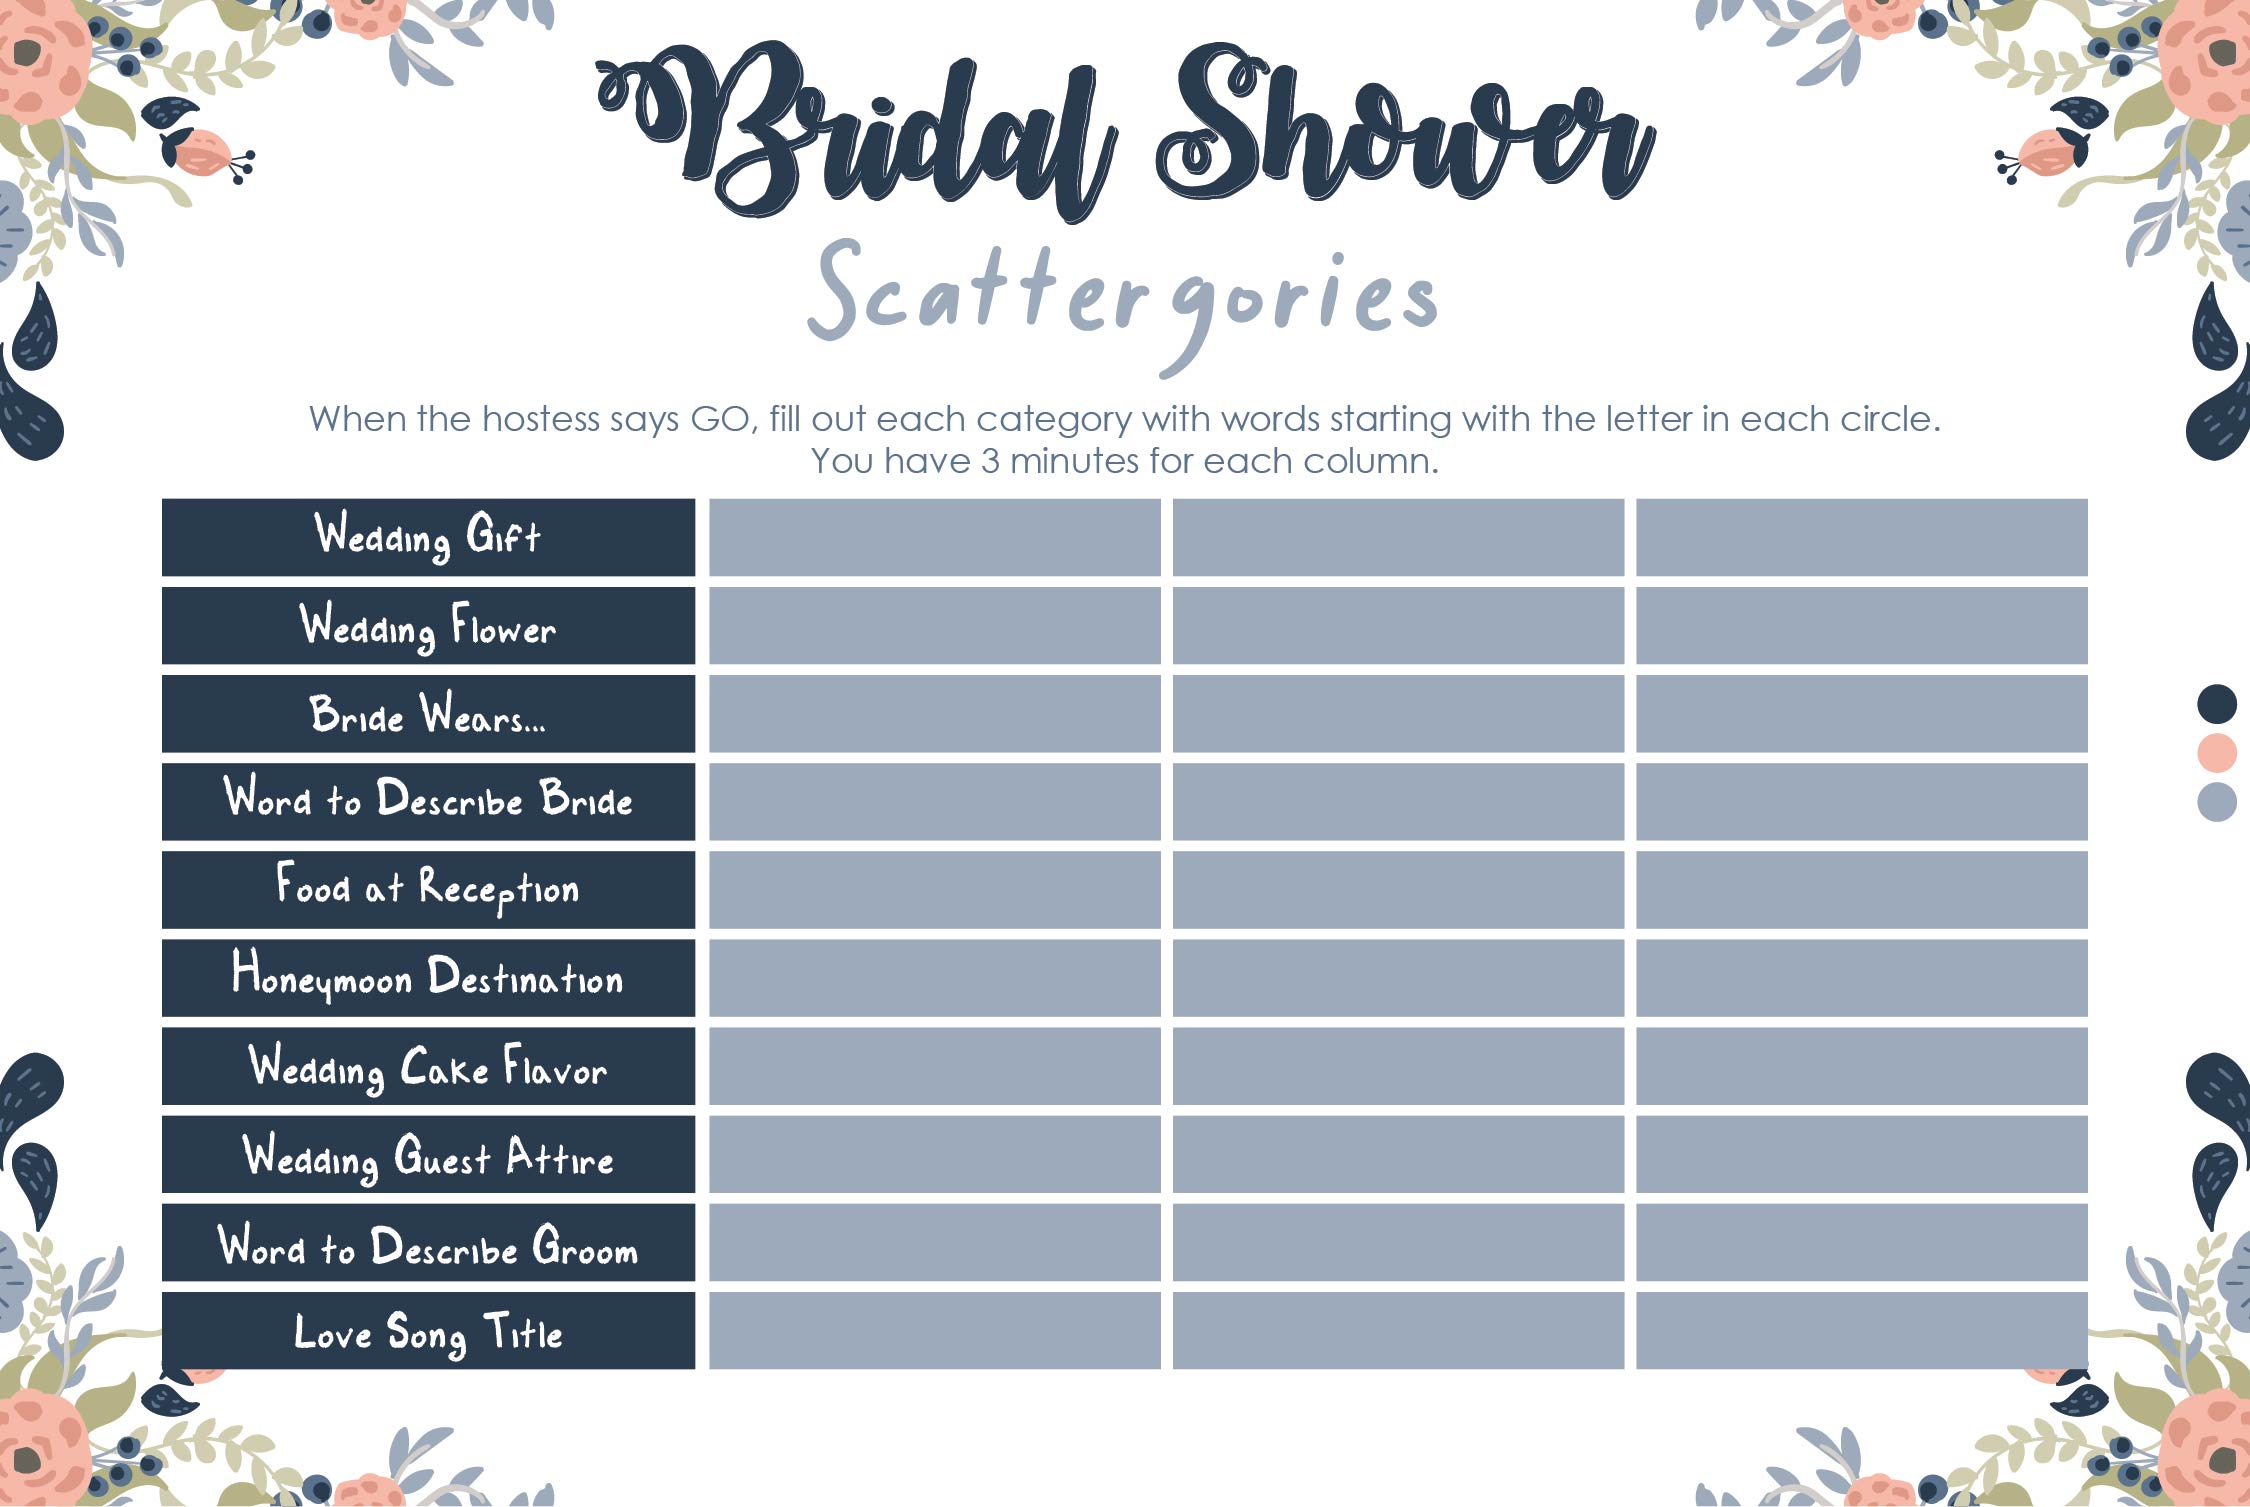 templates for bridal shower games - 6 best images of bridal scattergories sheets printable